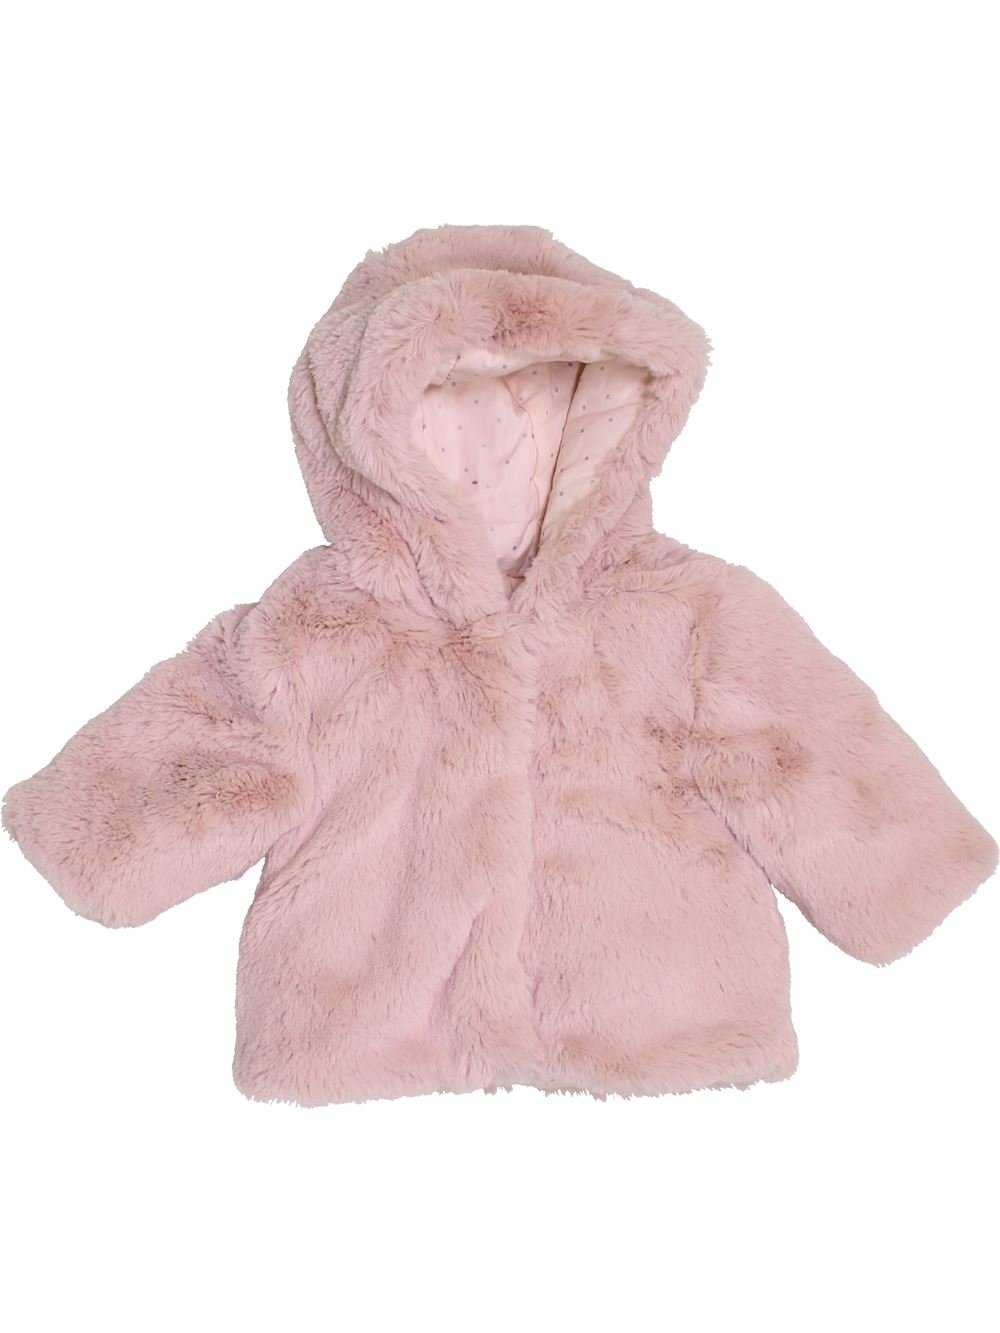 clearance prices utterly stylish for whole family Manteau Fille KIABI 6 mois pas cher, 9.49 € - #1383761